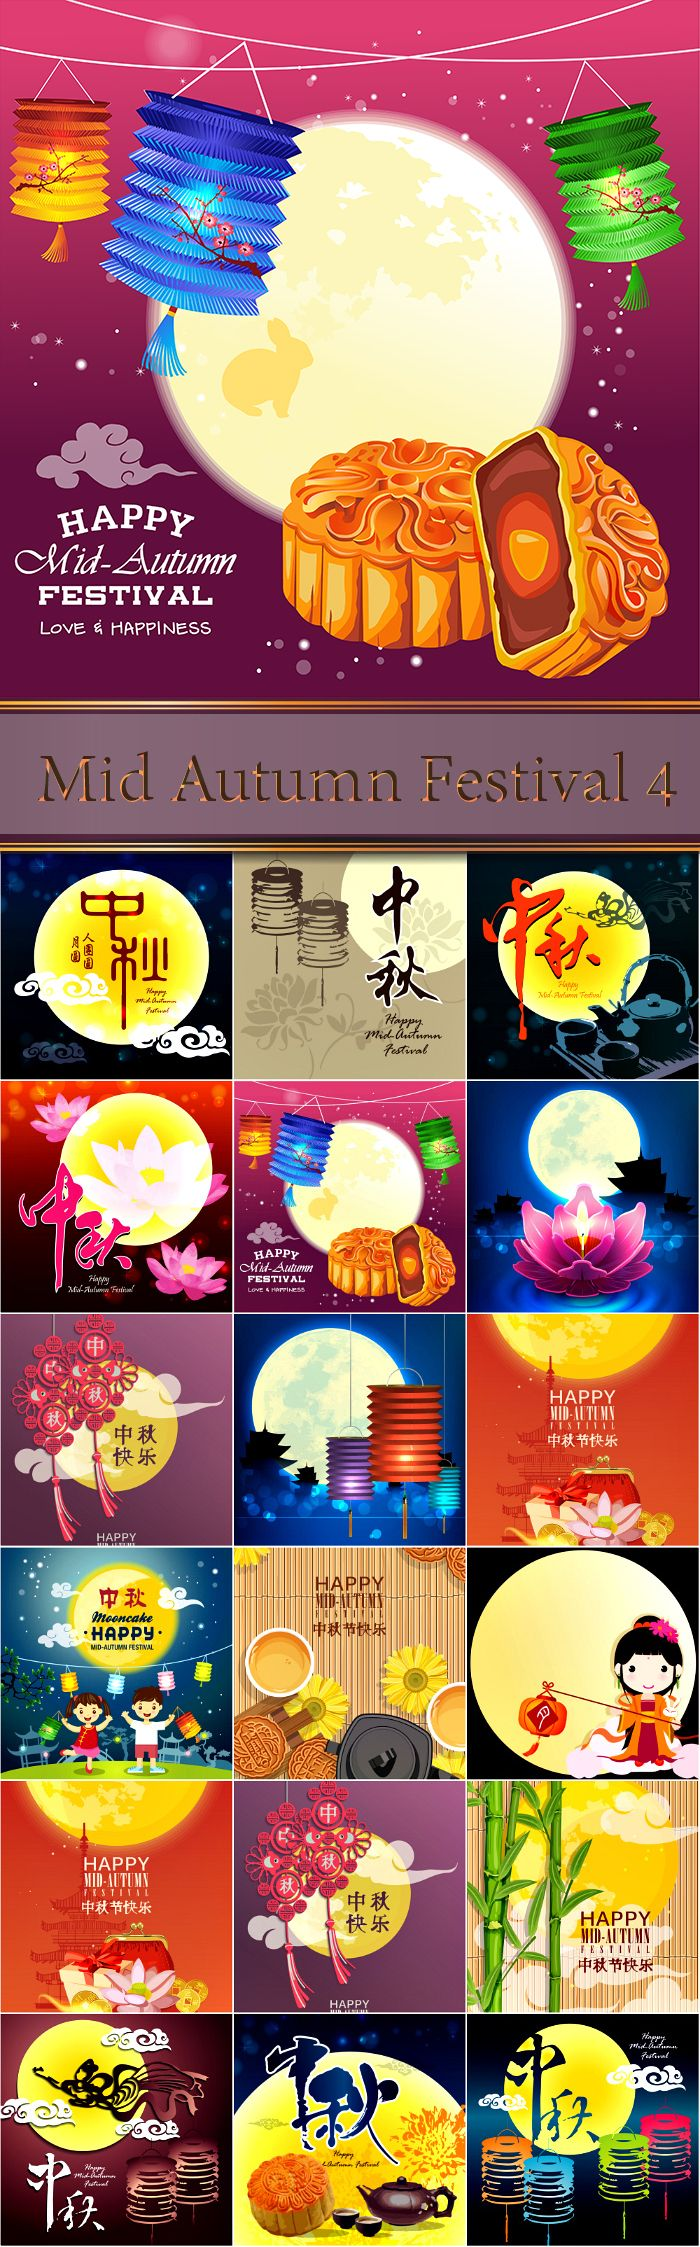 Блог Колибри: Happy Mid Autumn Festival 4